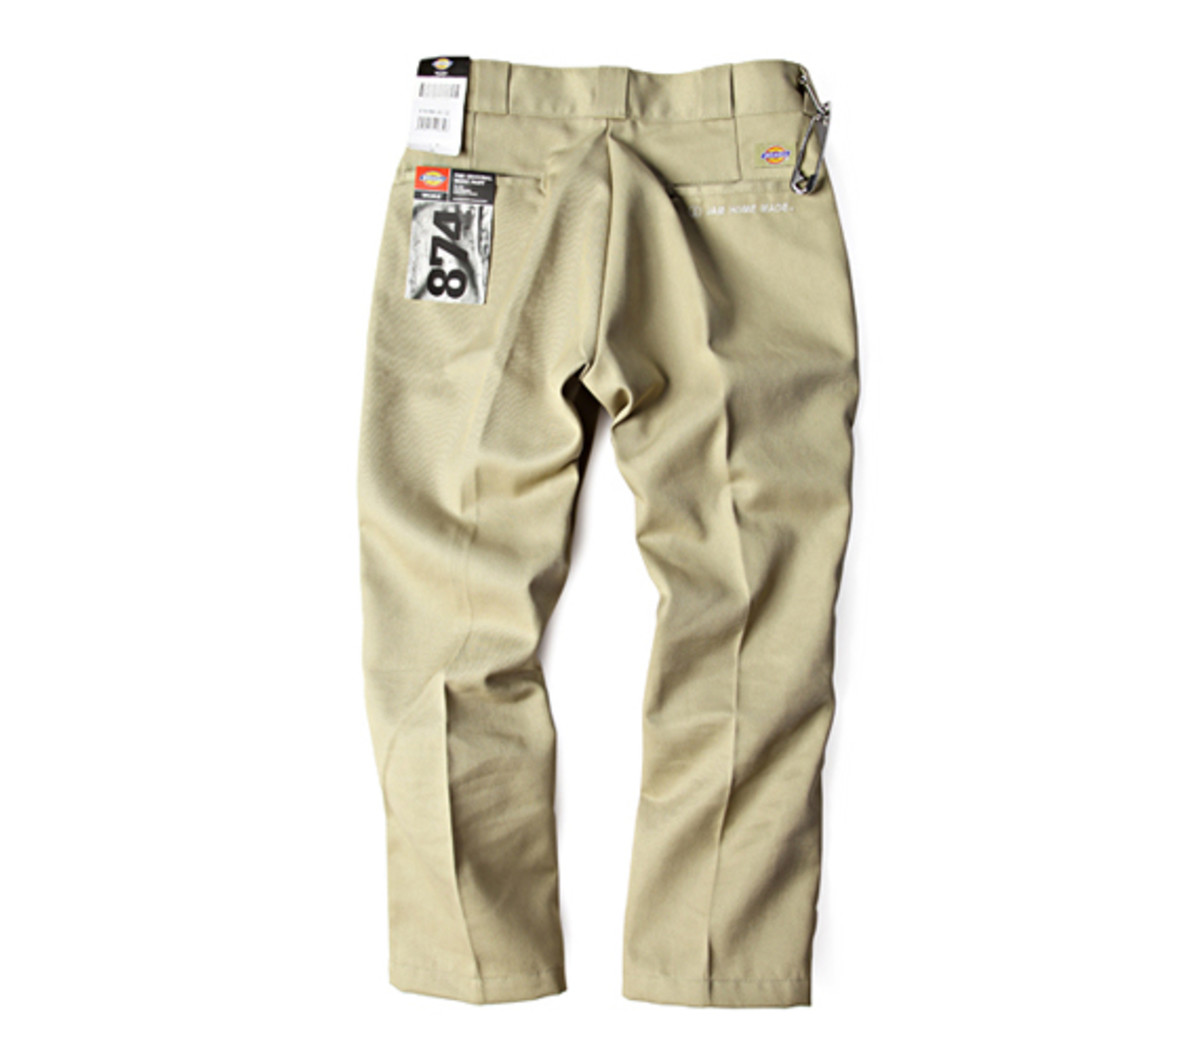 jam-home-made-dickies-customized-jodhpurs-work-pants-03